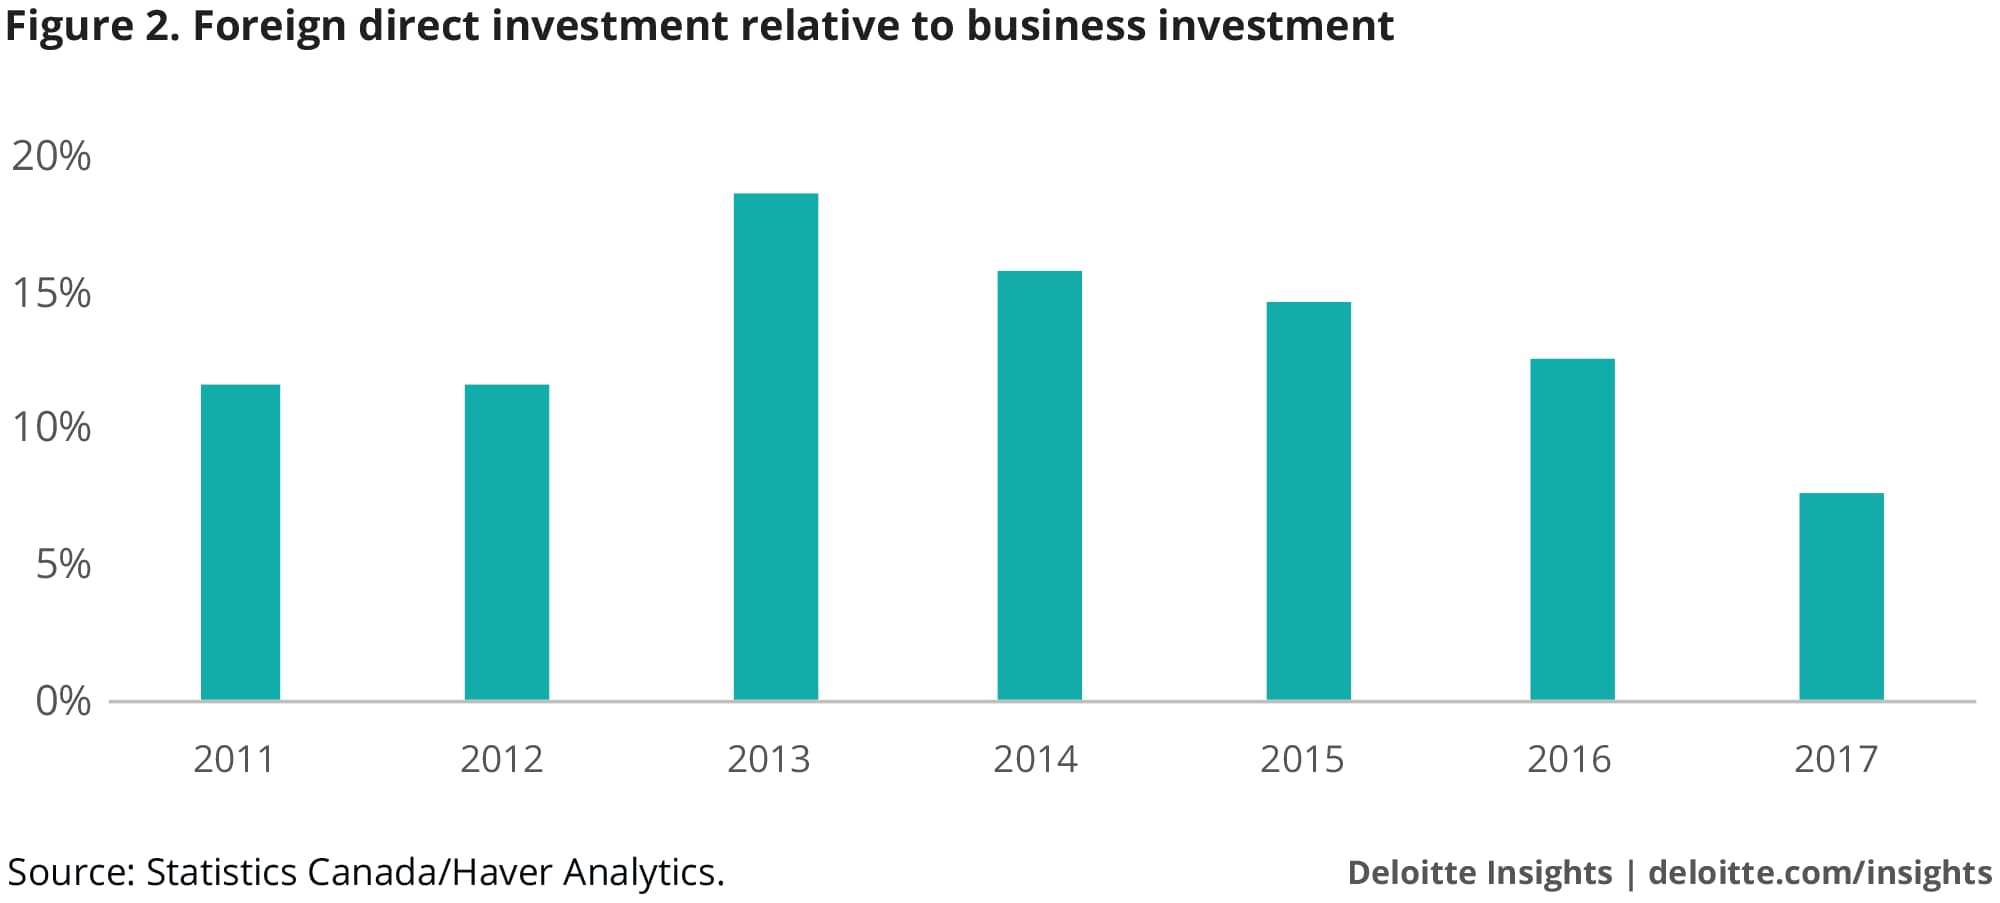 Foreign direct investment relative to business investment